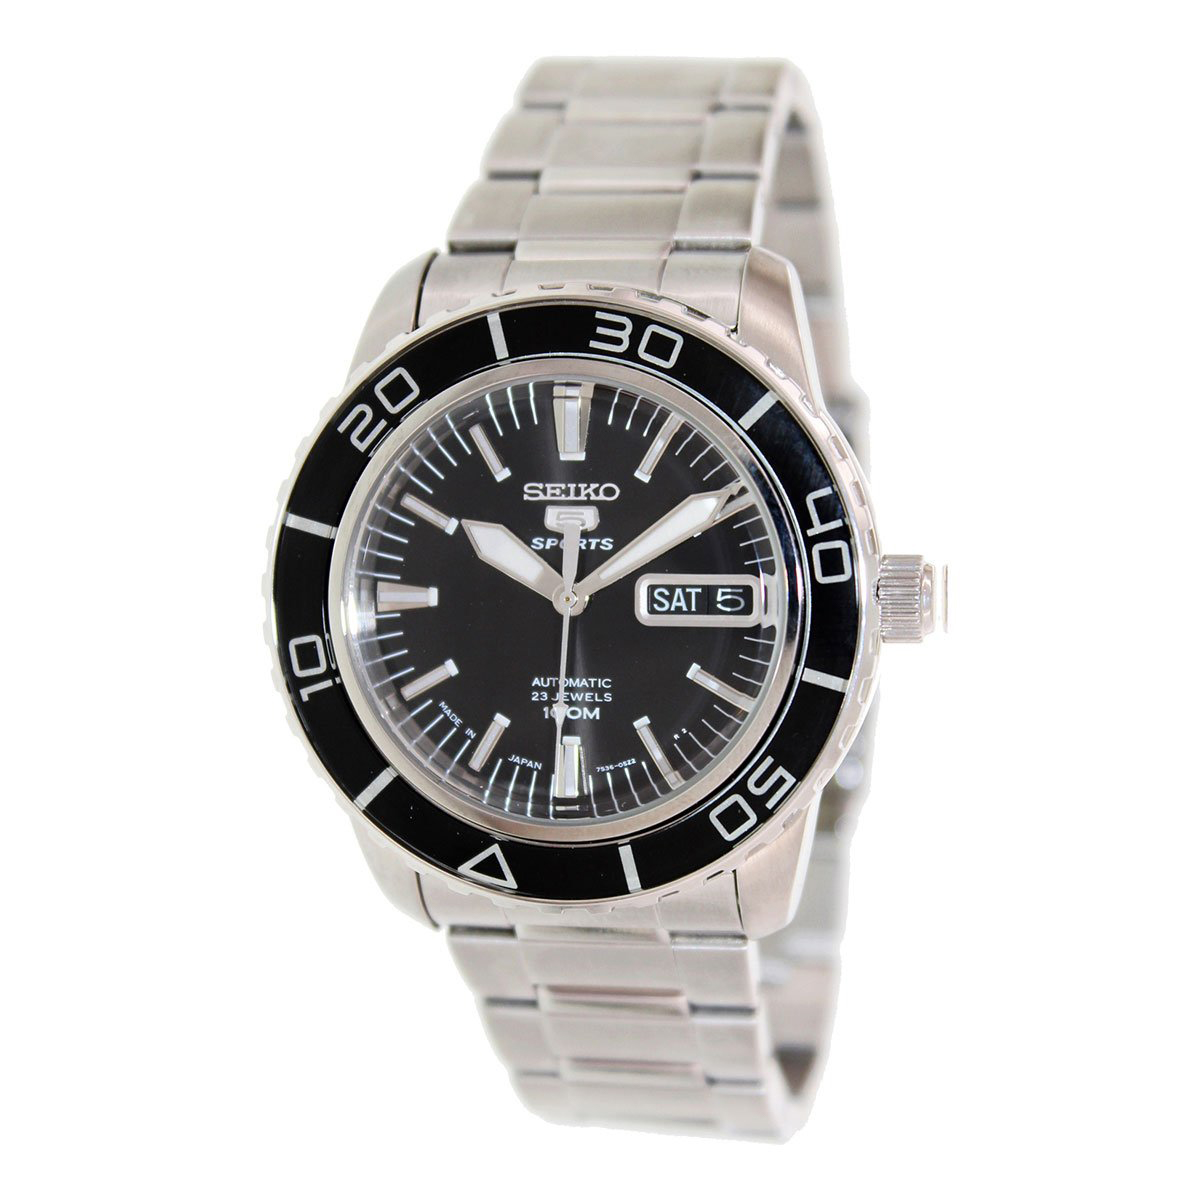 Seiko 5 Sports SNZH55K1, Modern, Durable, Stylish, White, Black Face